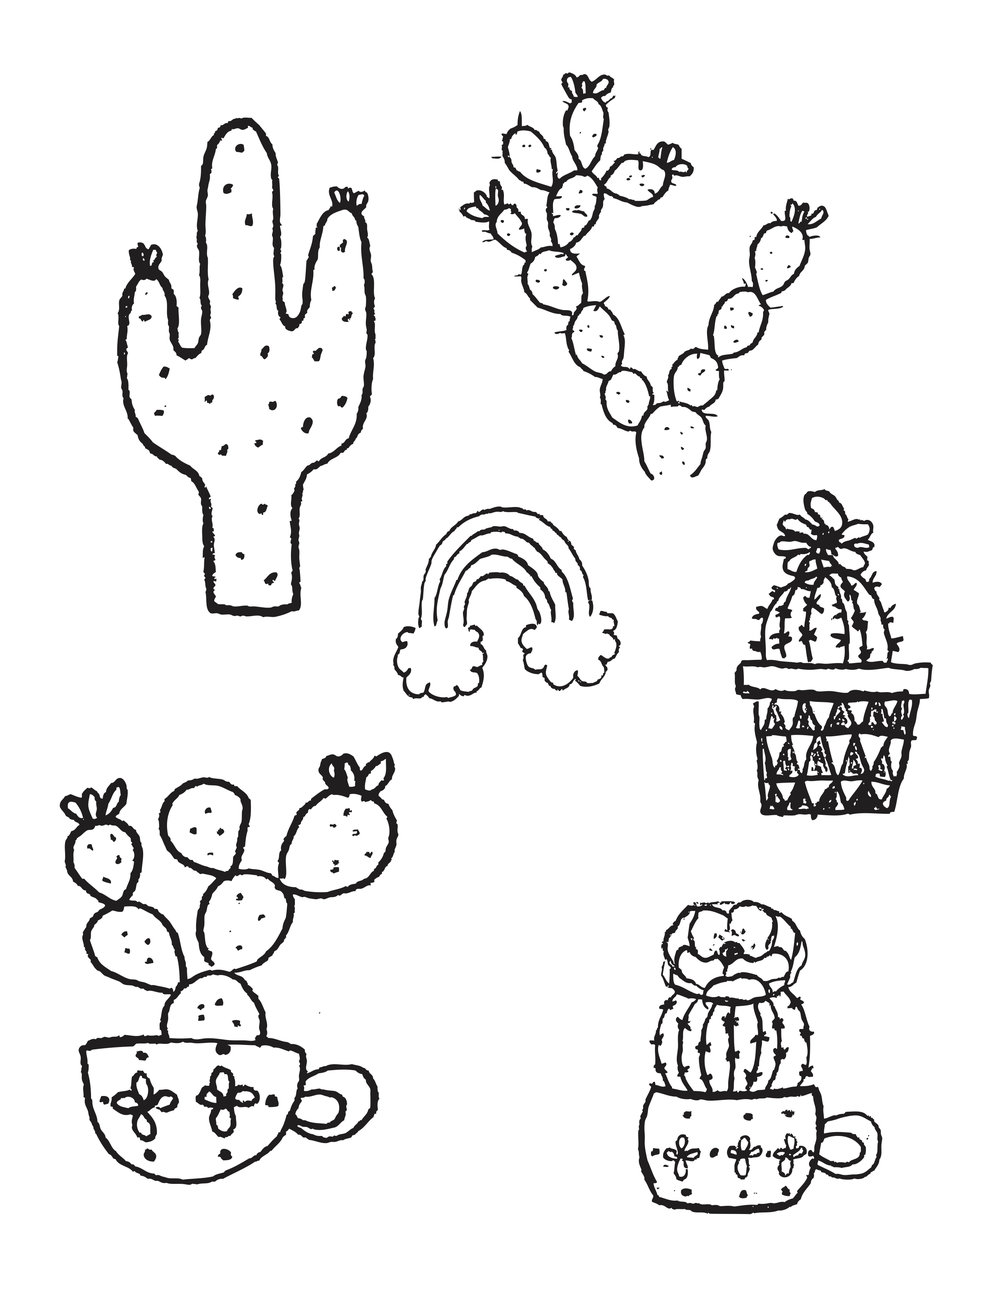 13 cactus designs oh so cute la la la 2016 copy.jpg